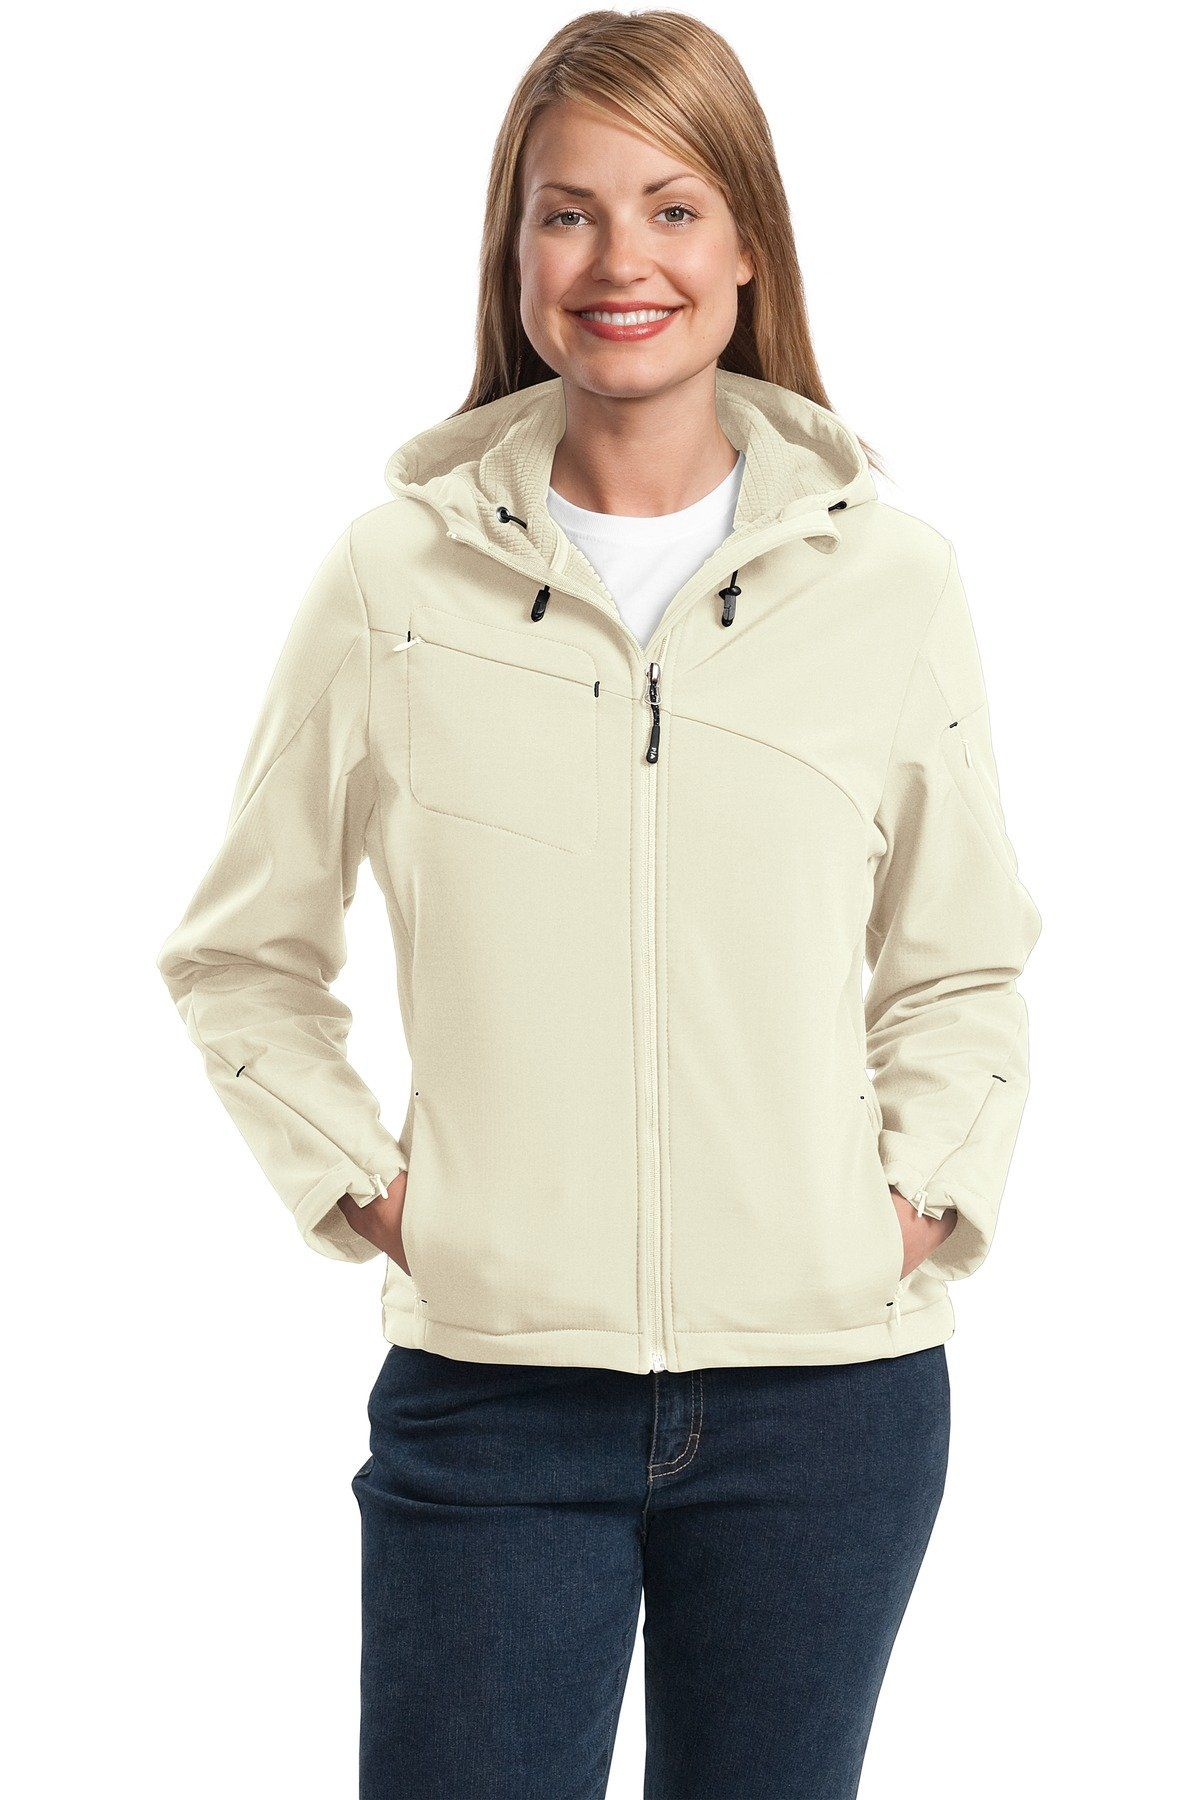 port authority soft shell jacket review